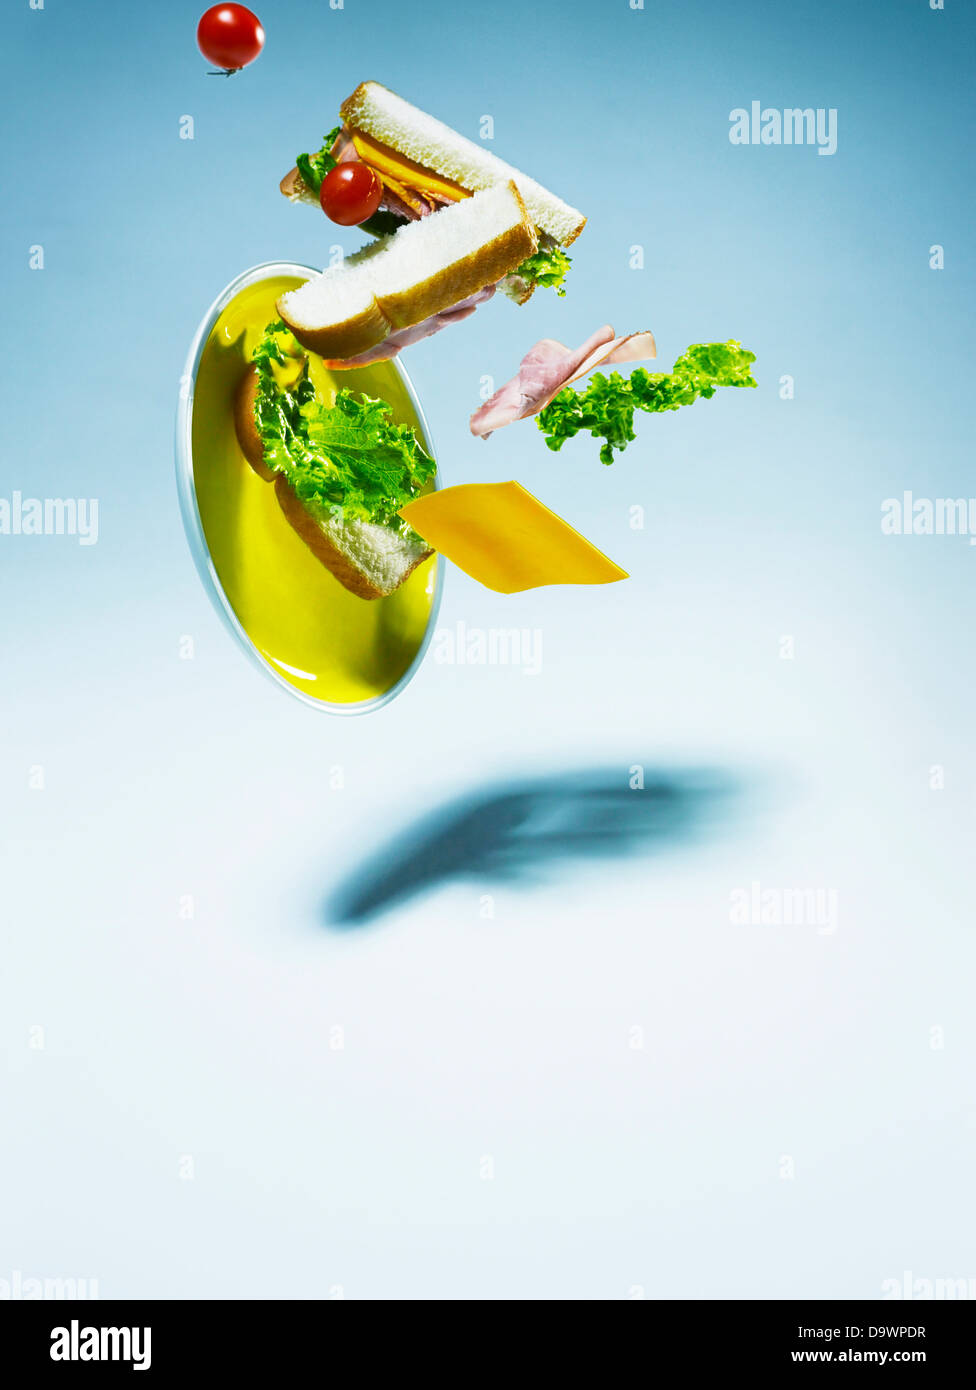 Sandwich chute Photo Stock